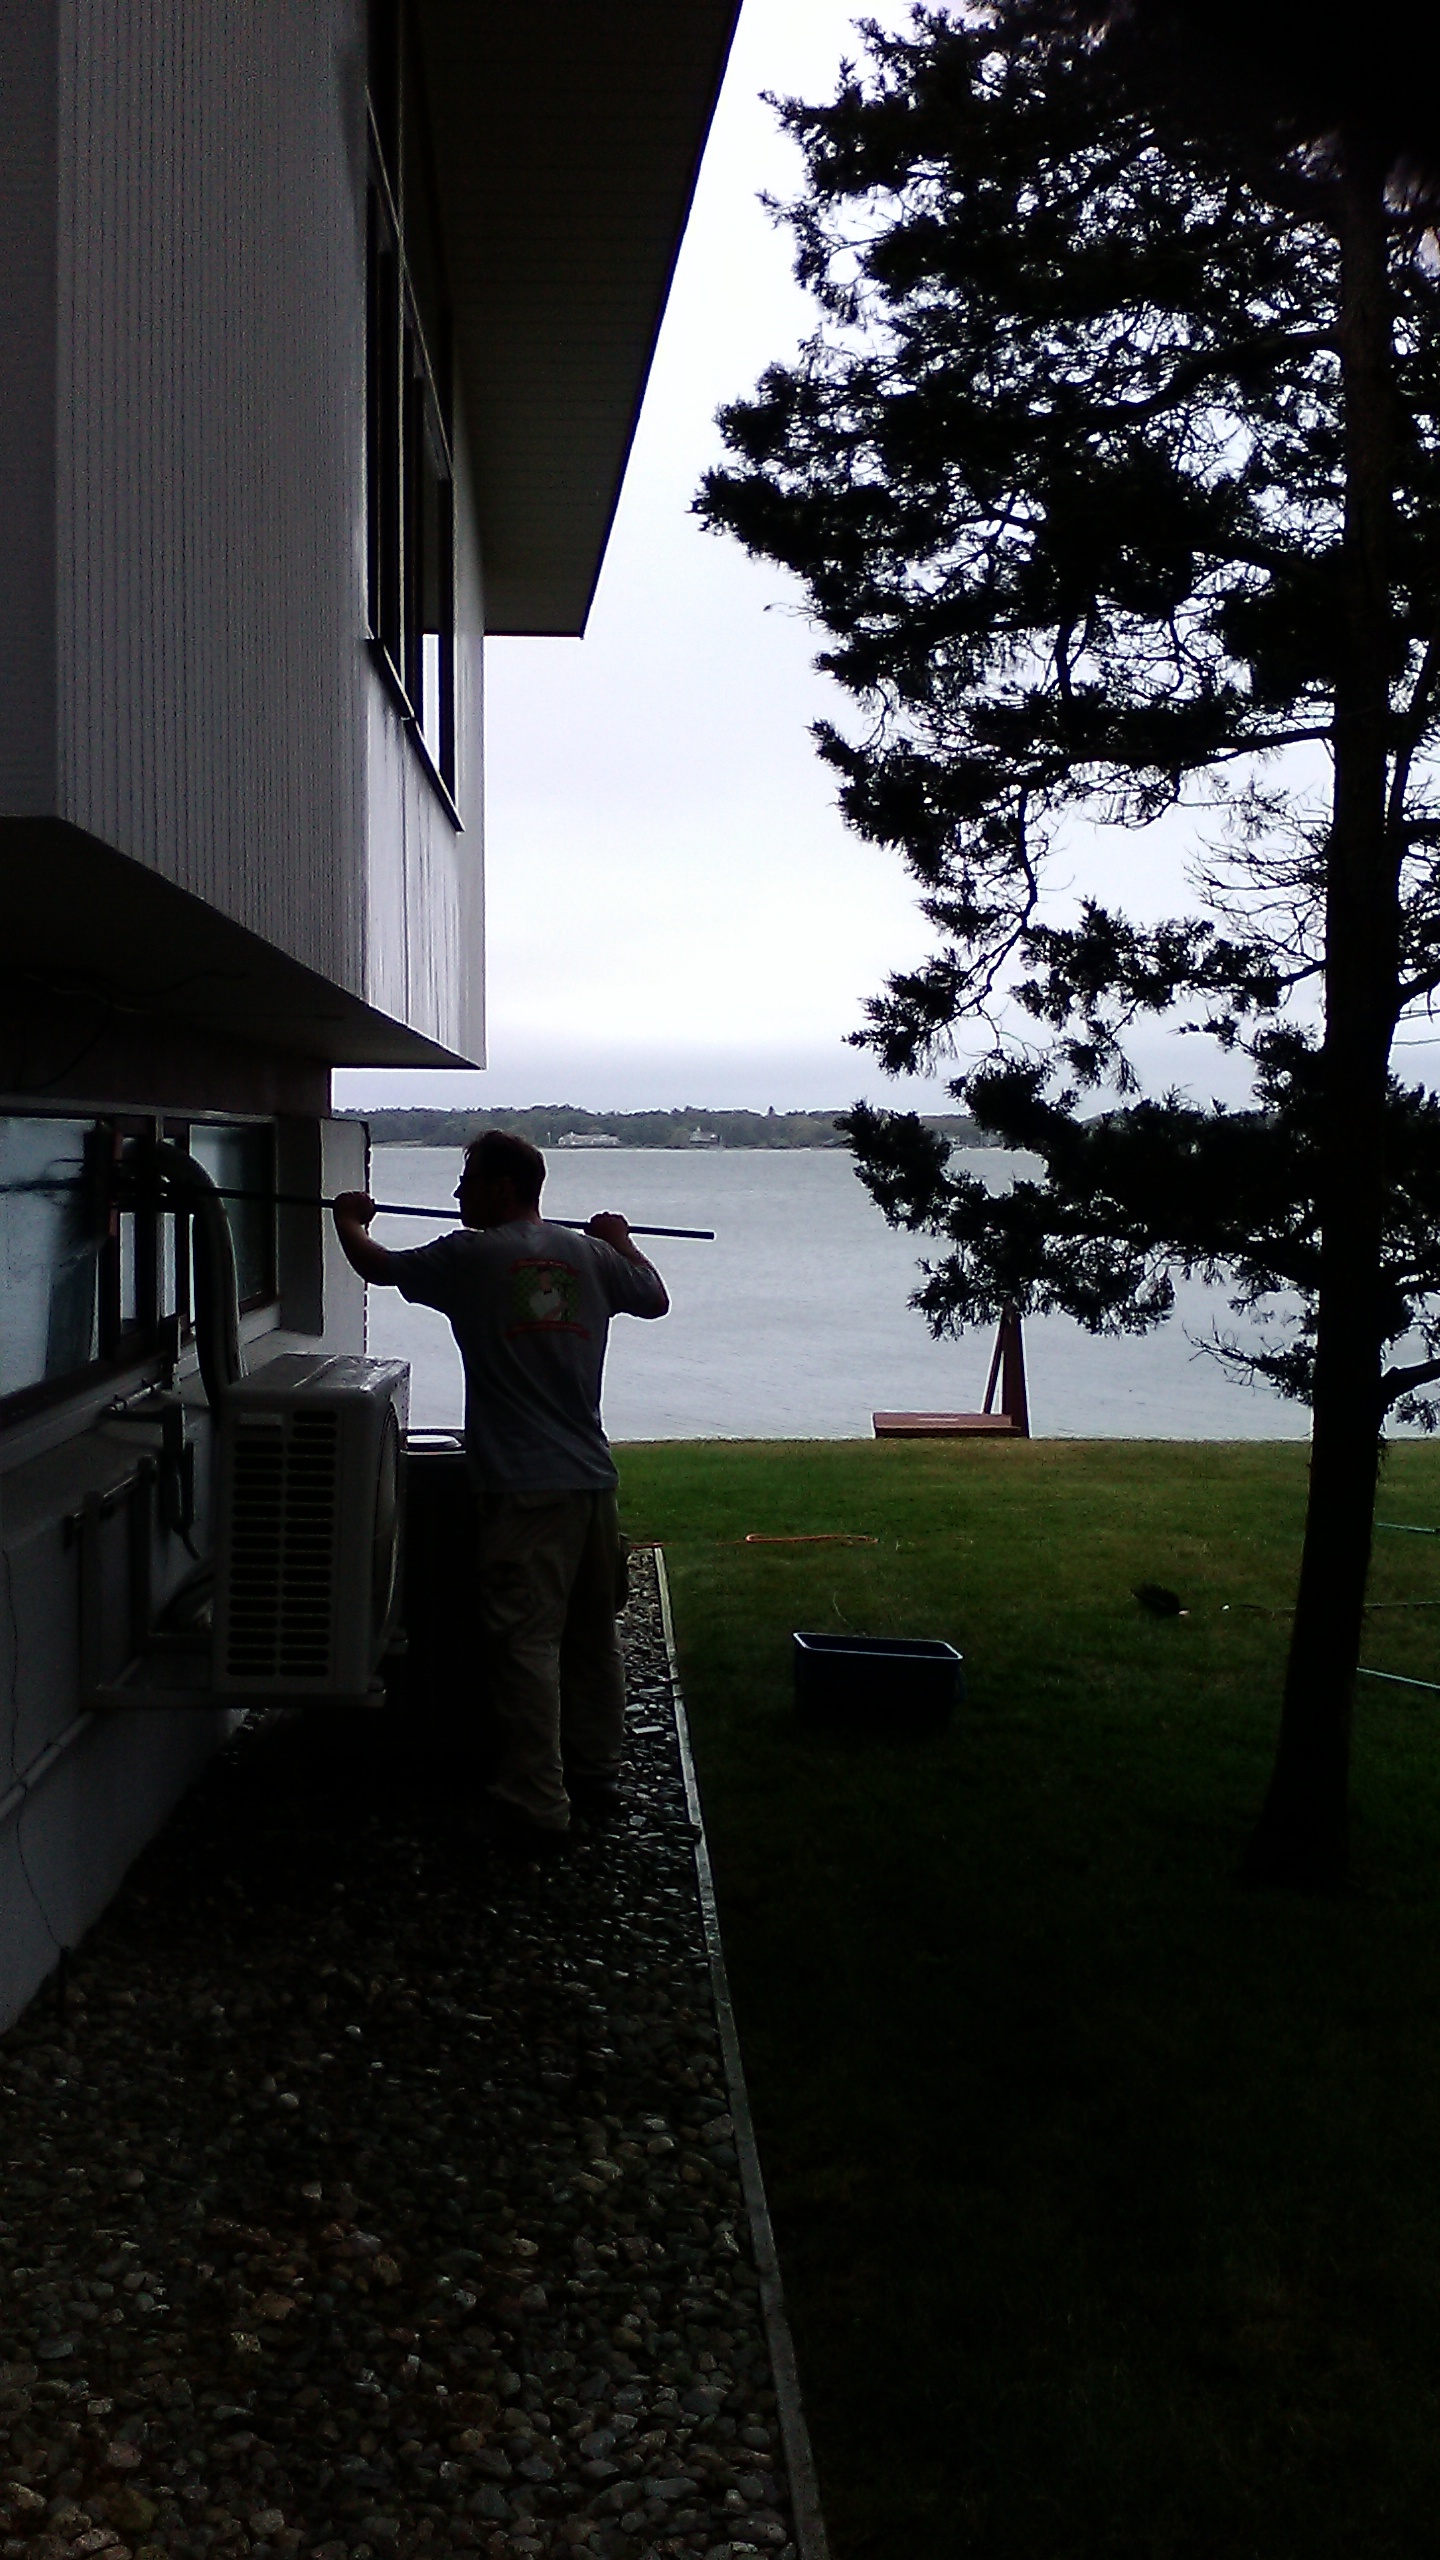 Window washing in Marion, Ma